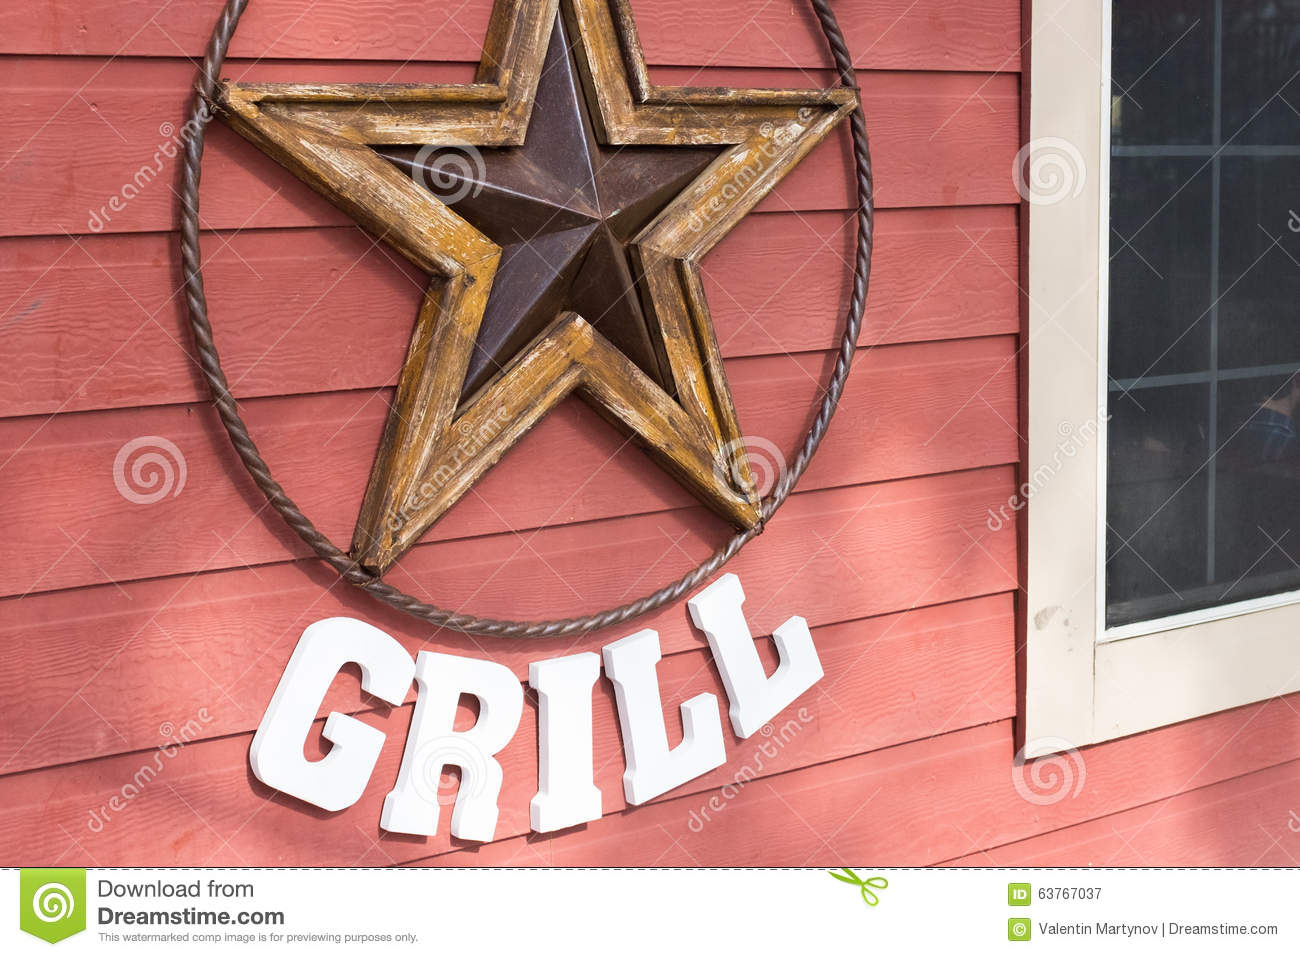 Rusty Metal Star Sign Hanging On A Wooden Wall Of A Grill